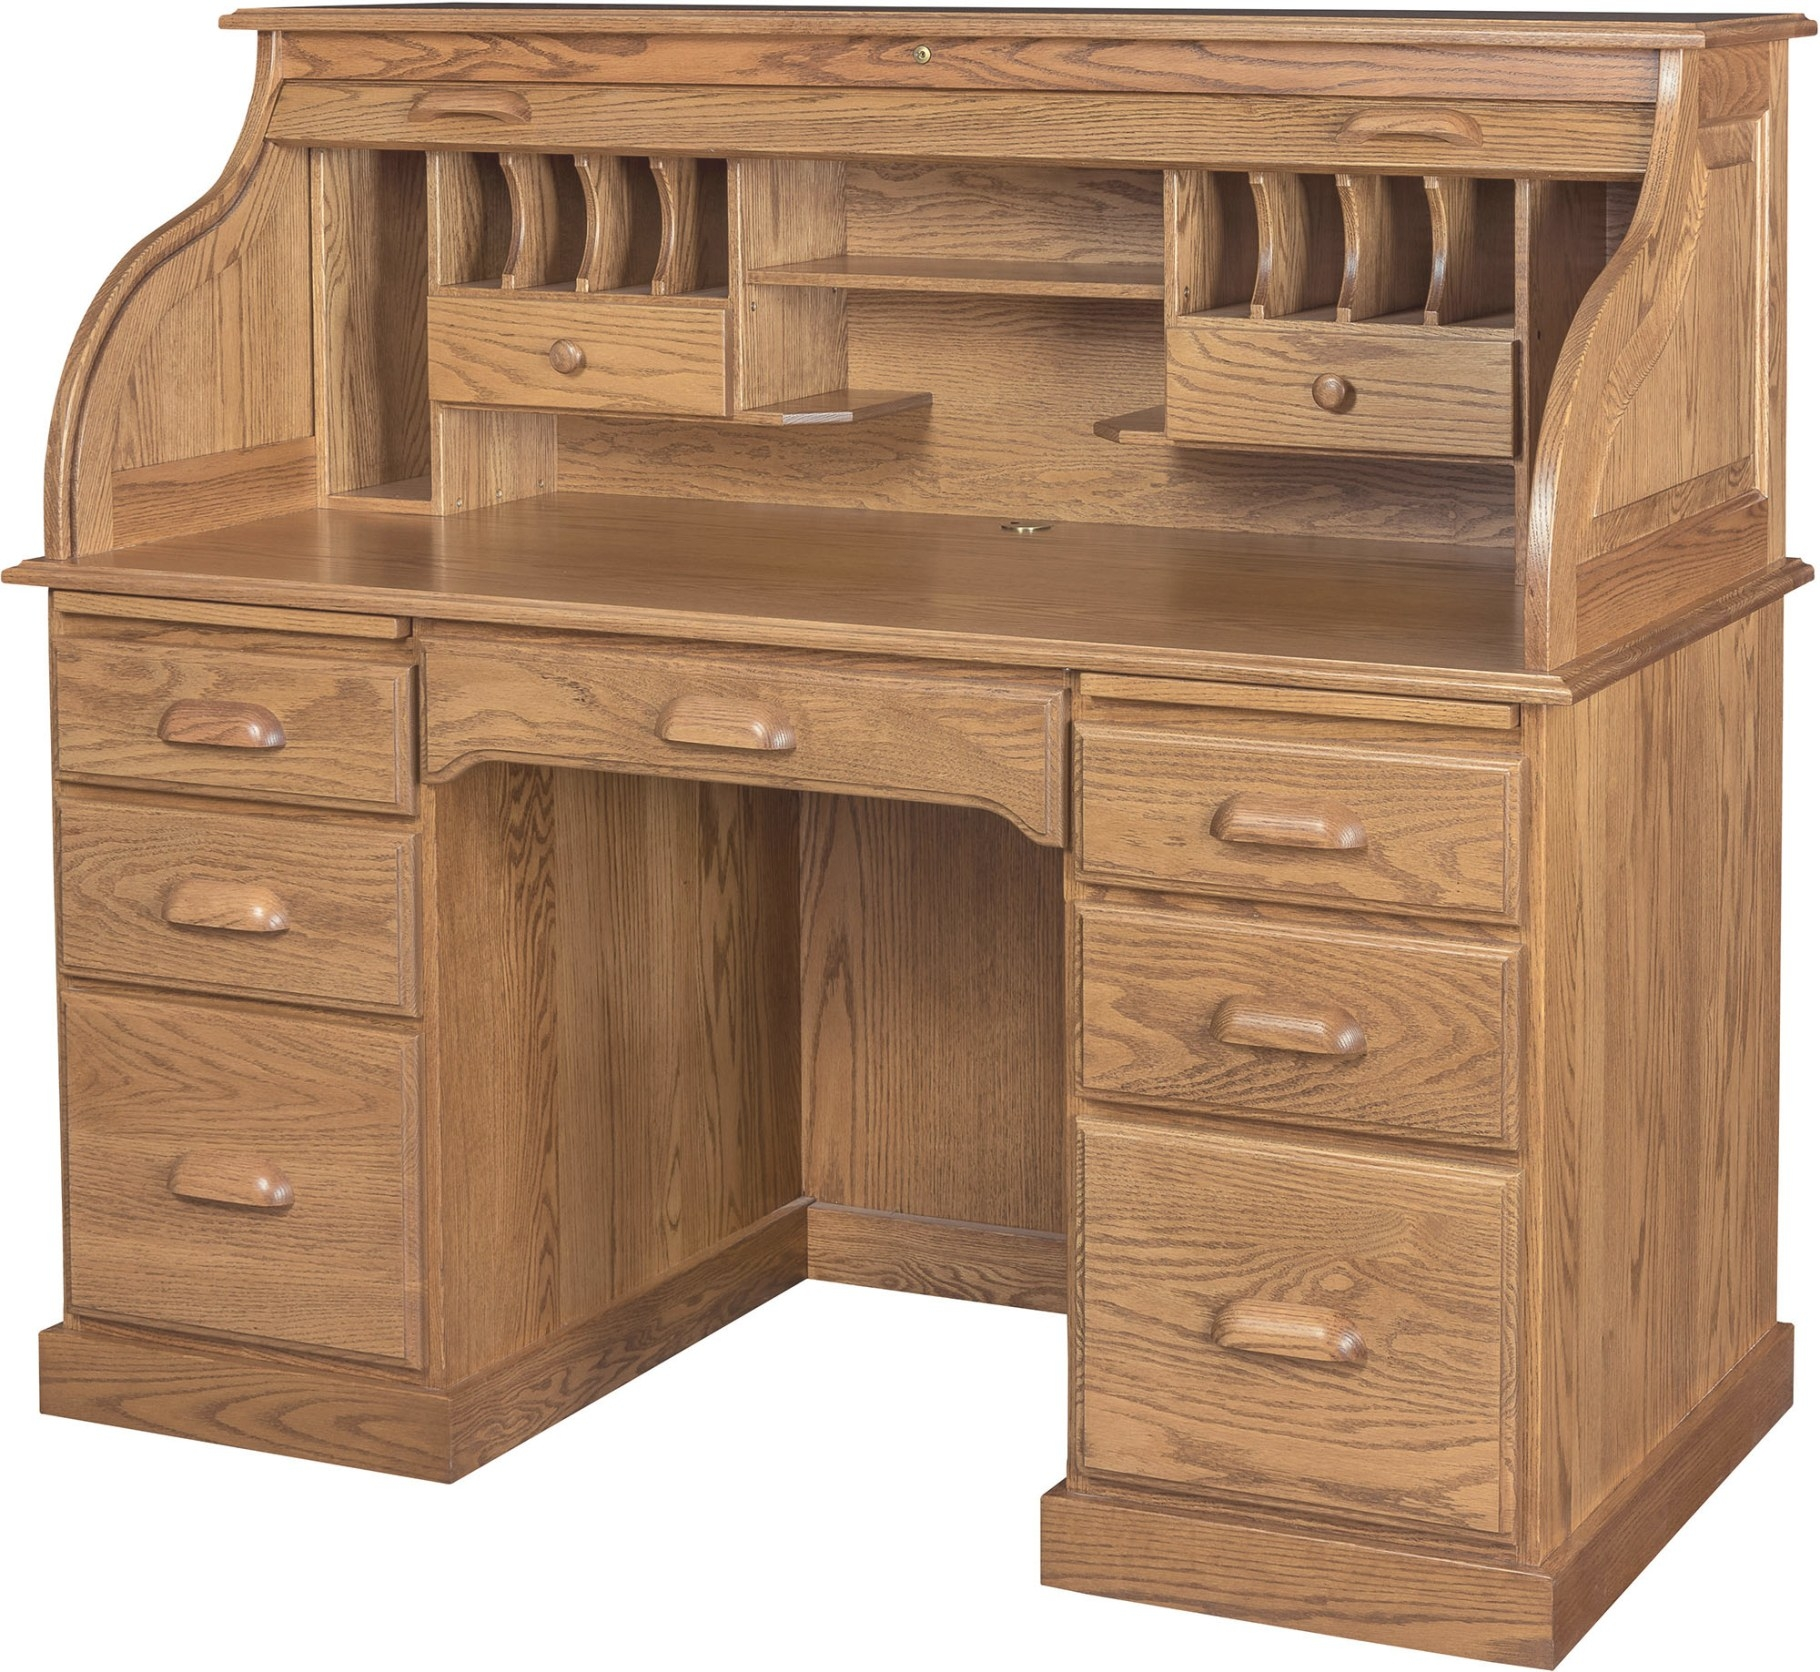 56 Inch Roll Top Desk With Hutch | 56 Inch Solid Wood Roll pertaining to Oak Roll Top Desk